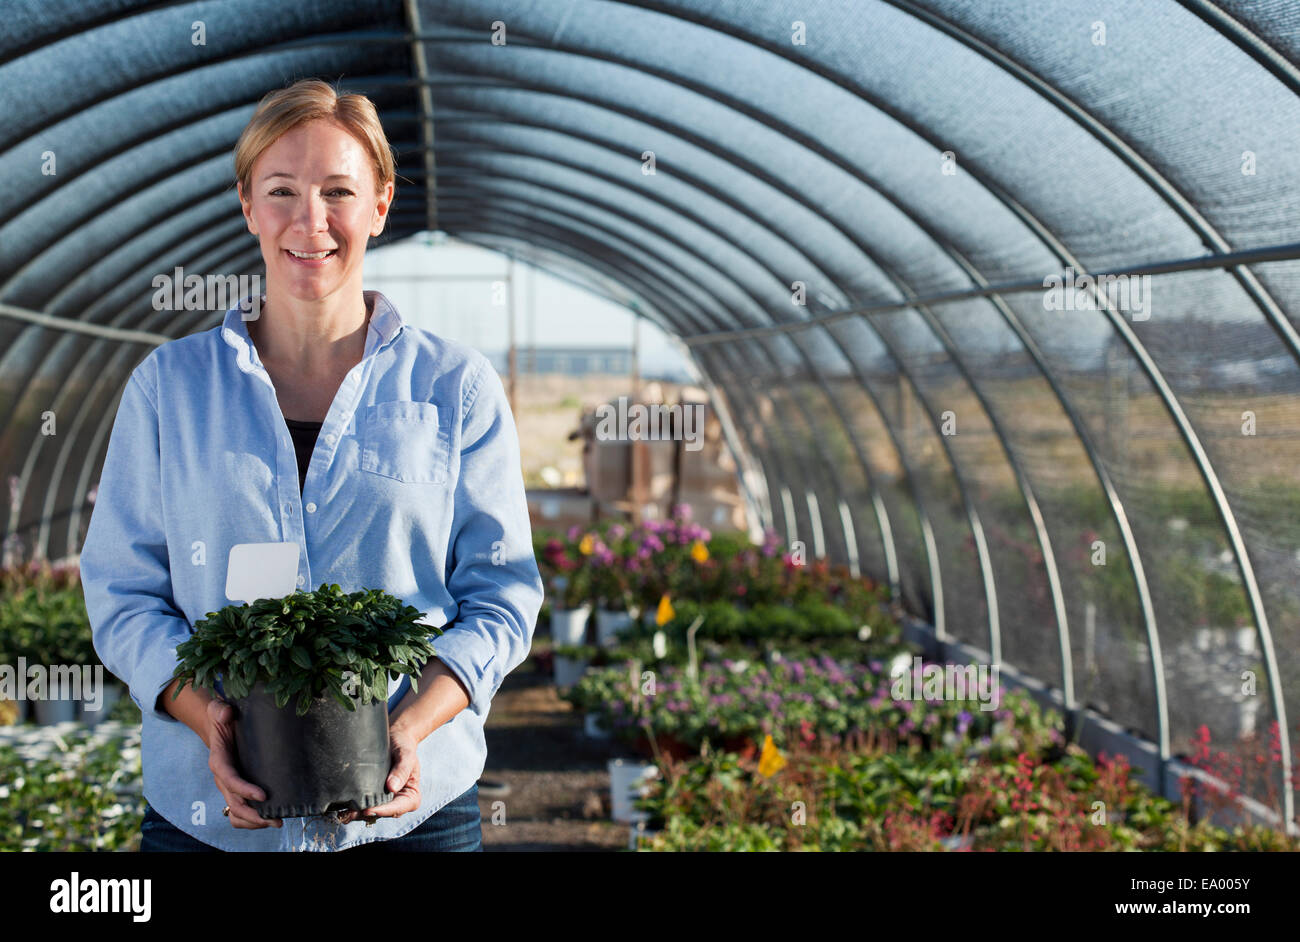 Portrait of mature female worker holding potted plant in plant nursery polytunnel - Stock Image